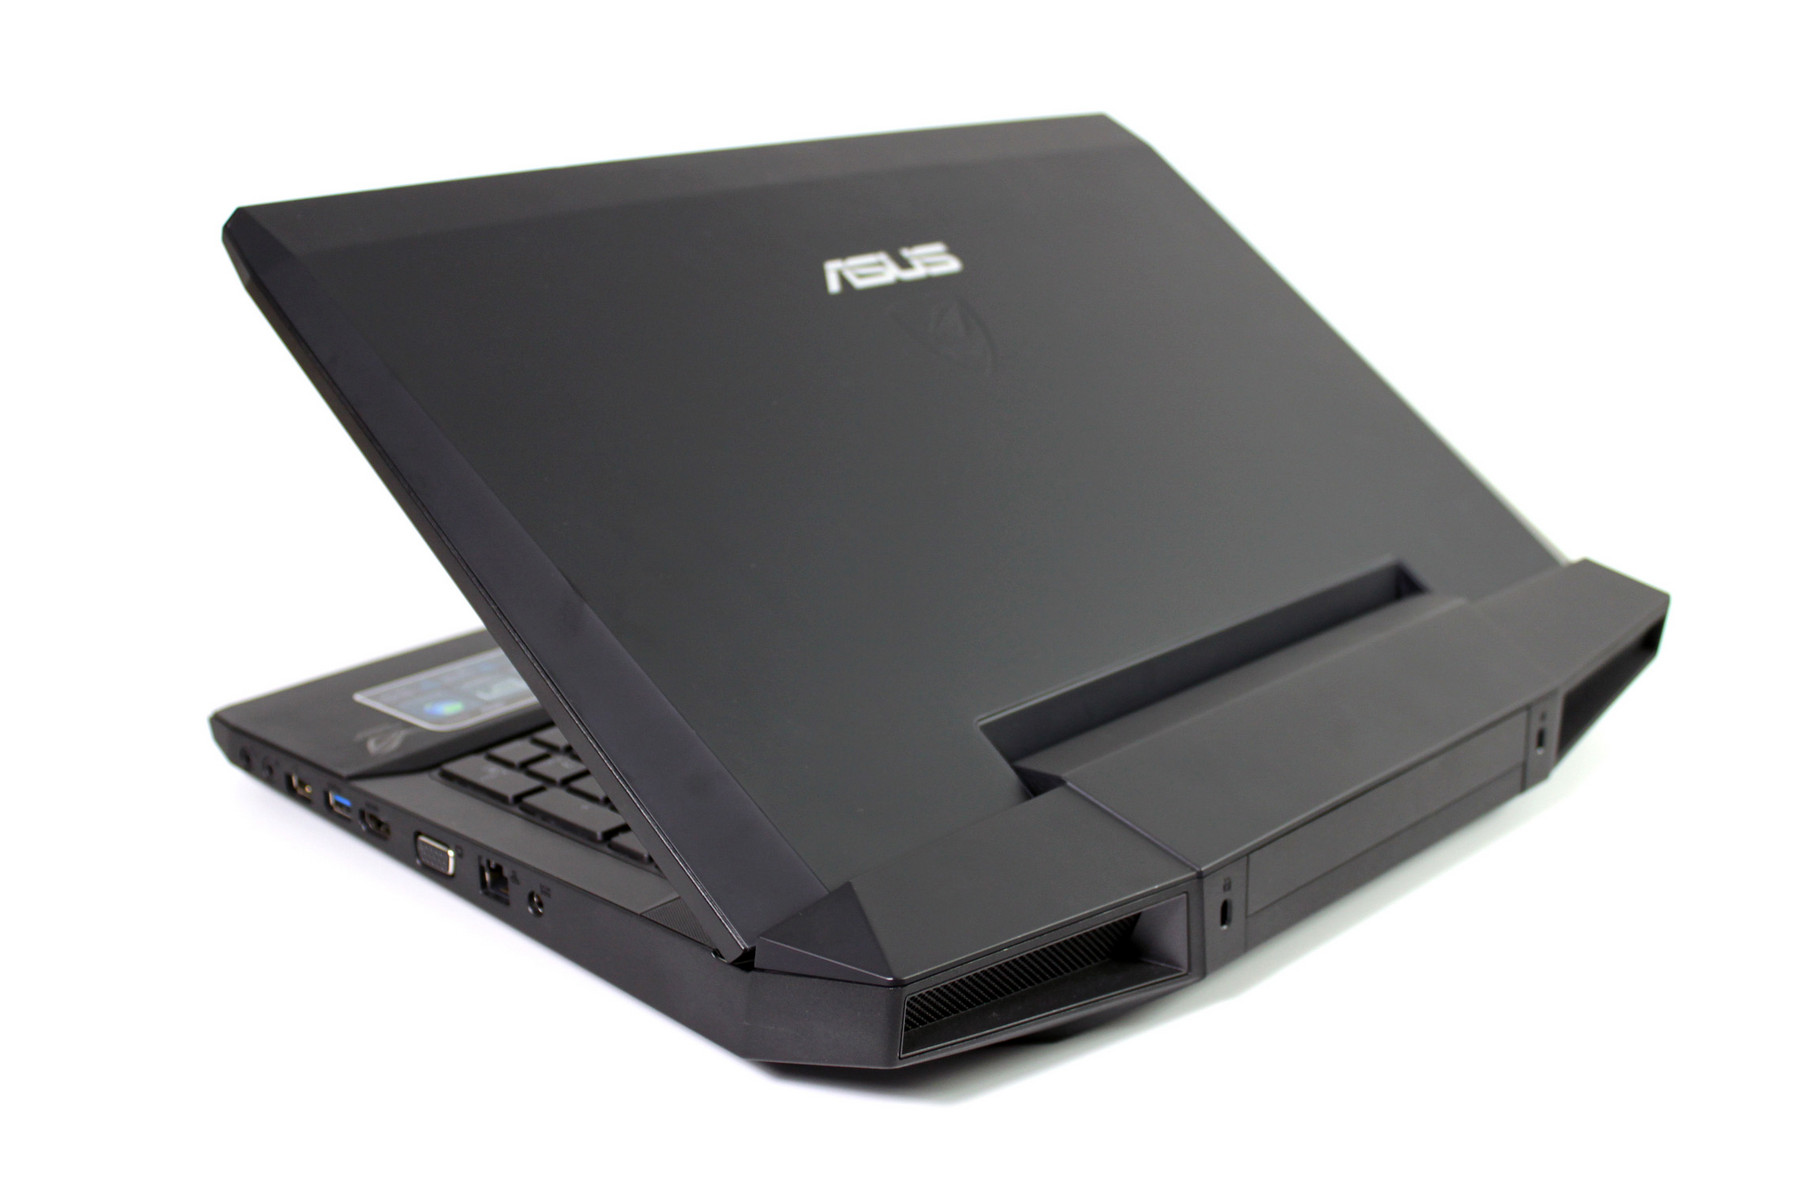 ASUS G73SW NOTEBOOK REALTEK AUDIO DRIVER WINDOWS 7